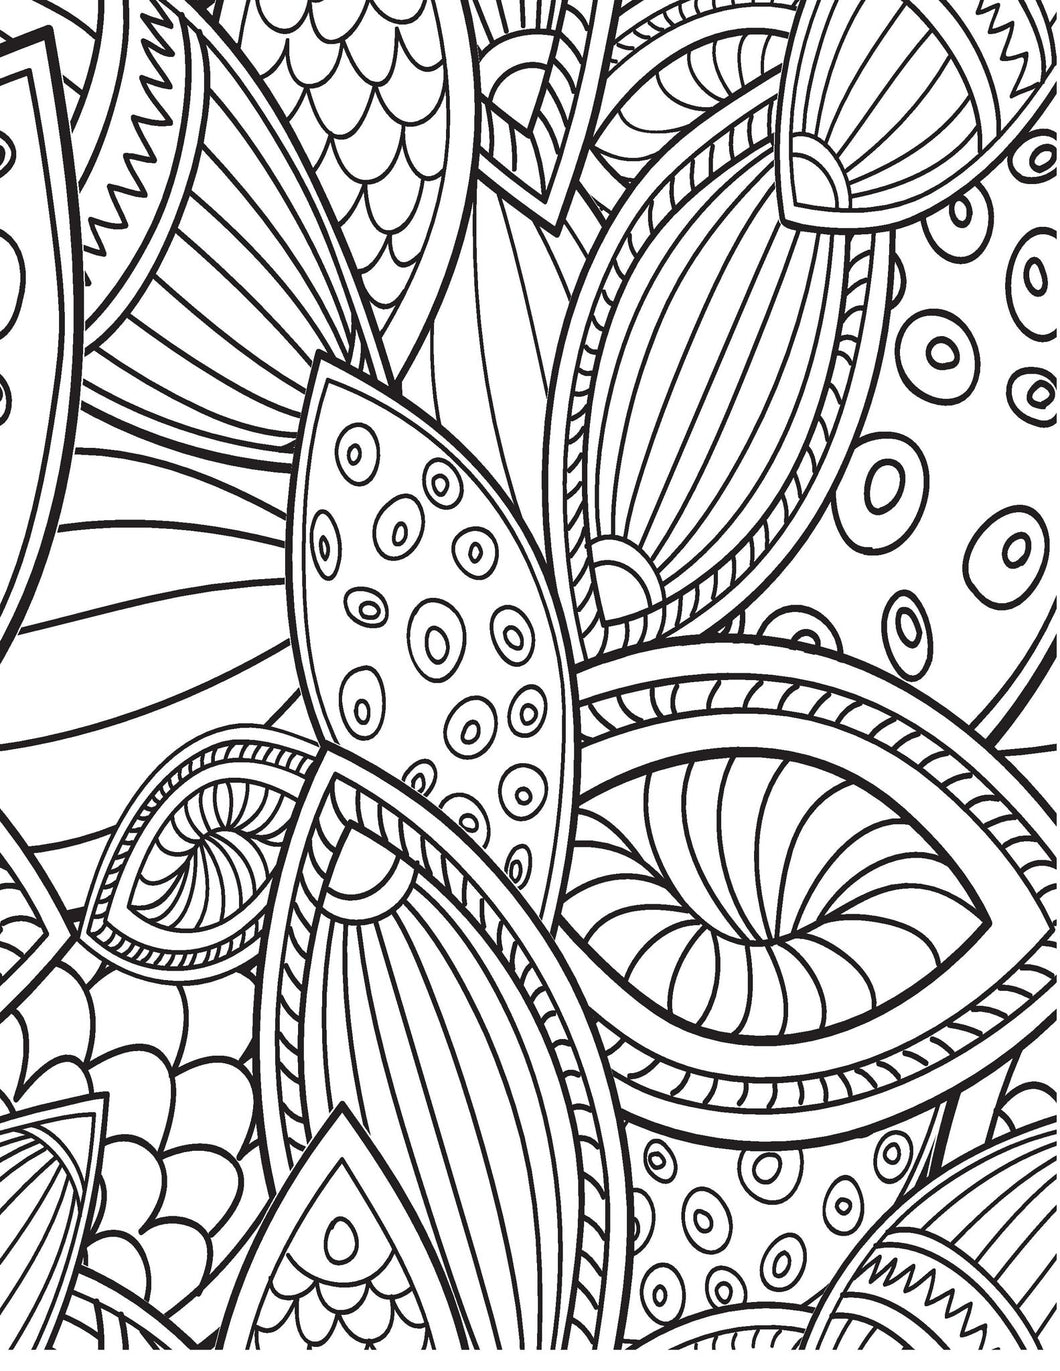 A Birthday Coloring Book Just for You! - Live Your Life in Color ...